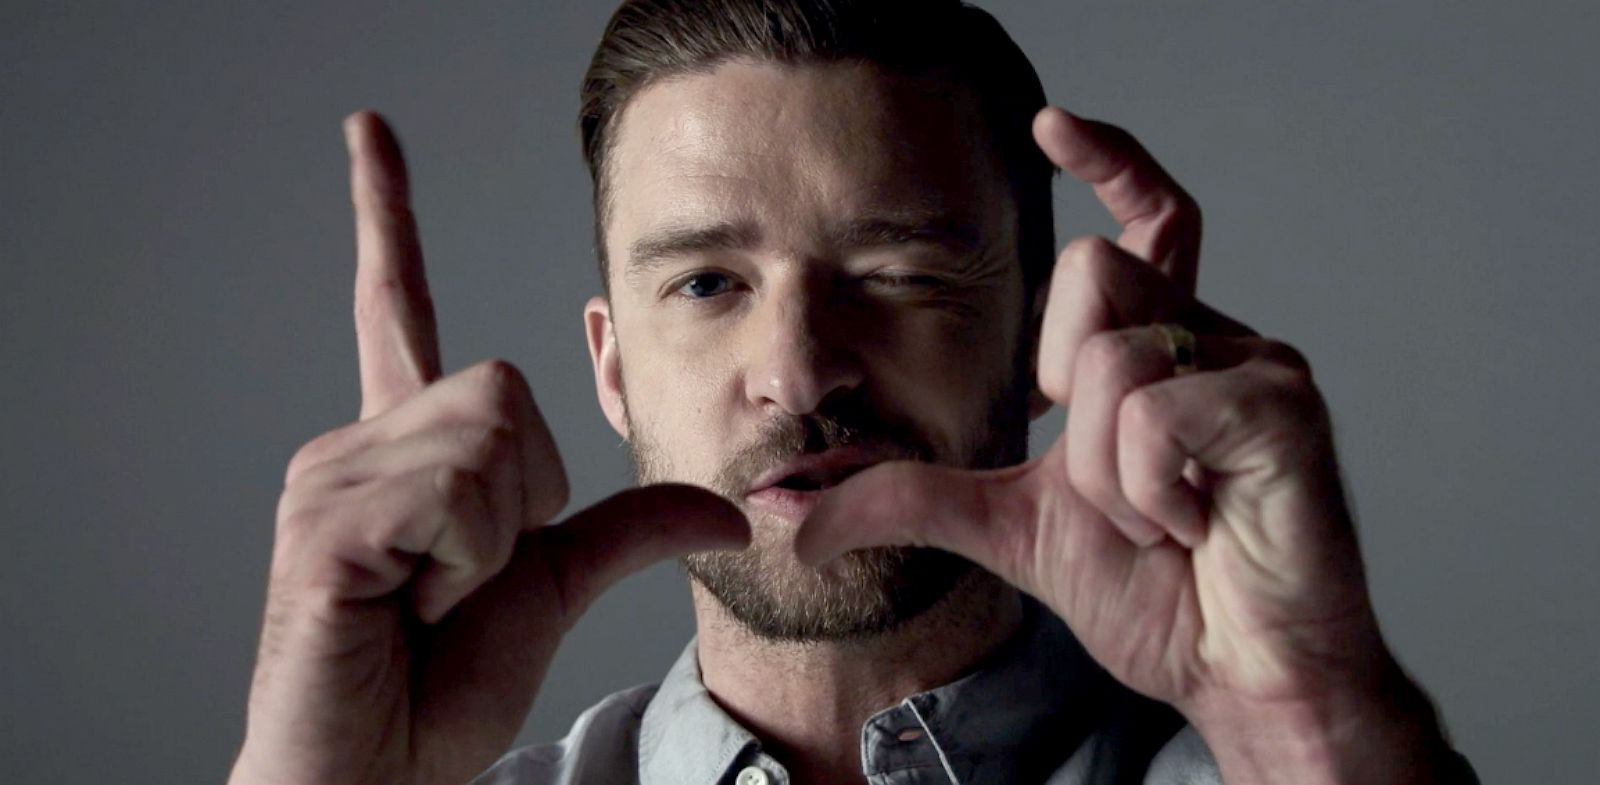 justin timberlake tunnel vision nudityheavy music video